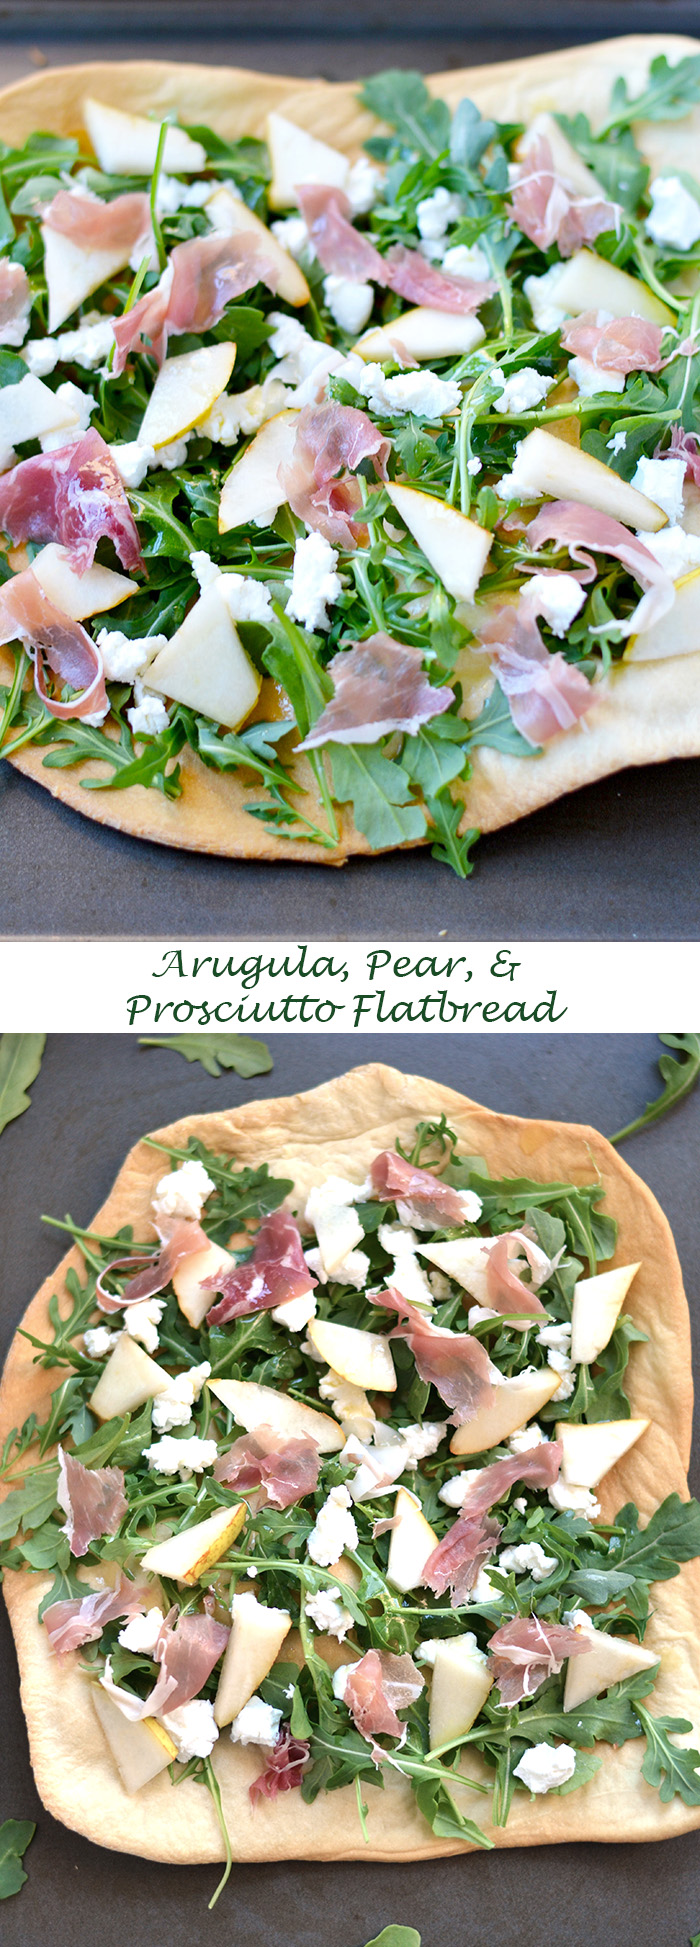 Arugula Pear Prosciutto & Goat Cheese Flatbread with Meyer Lemon Dressing